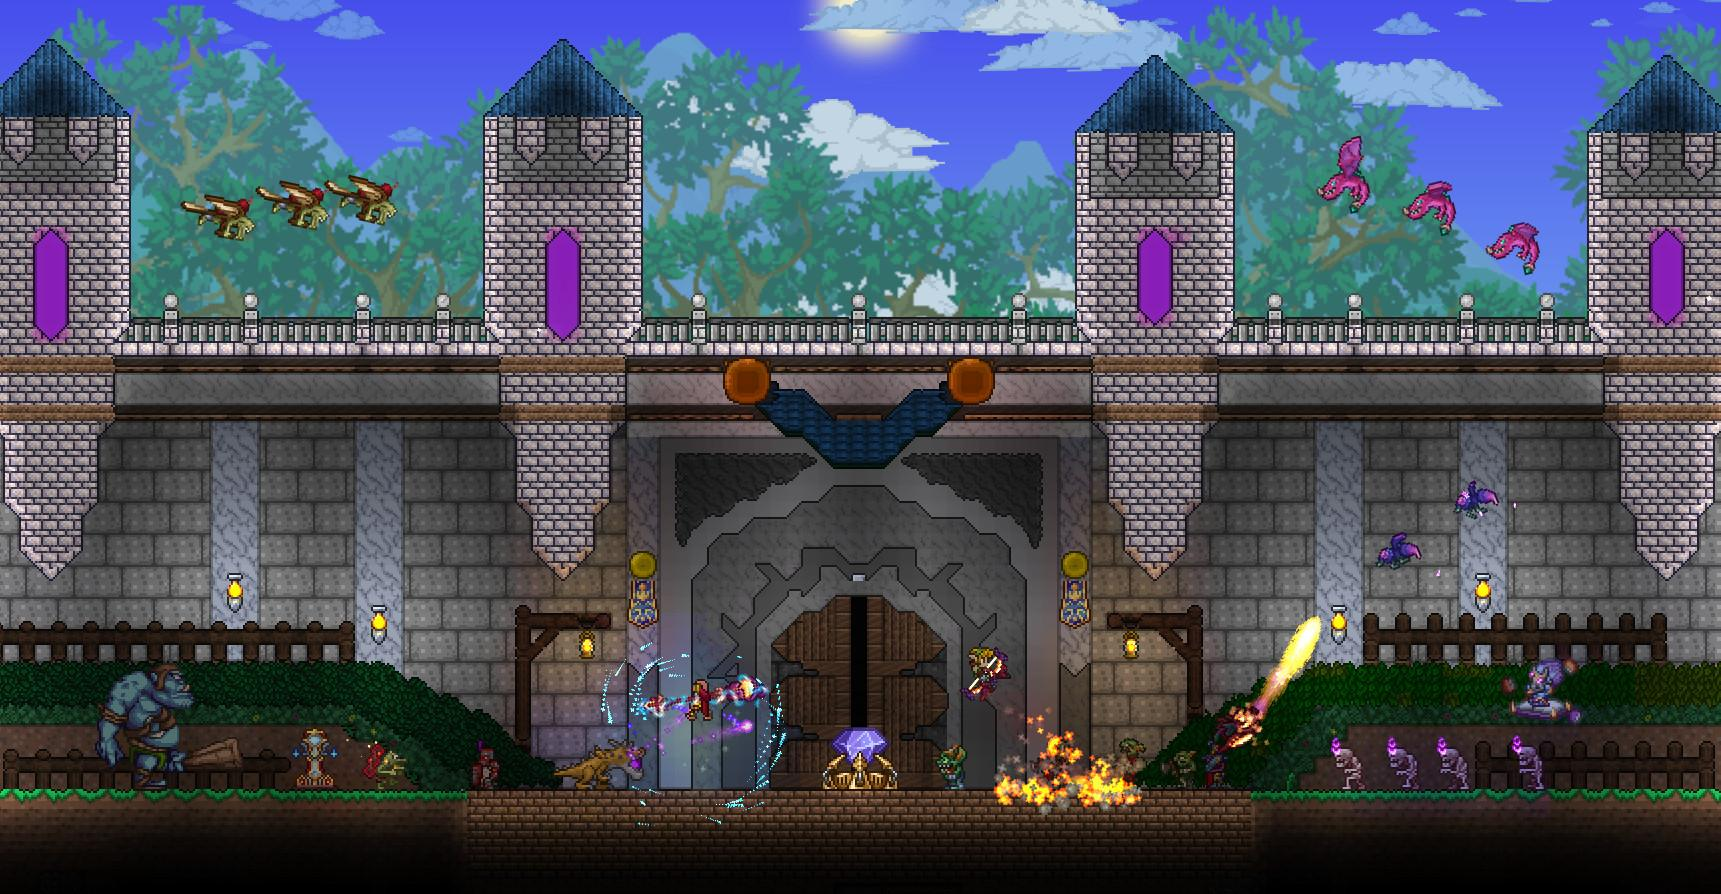 Players fending off a wave of monsters in Terraria